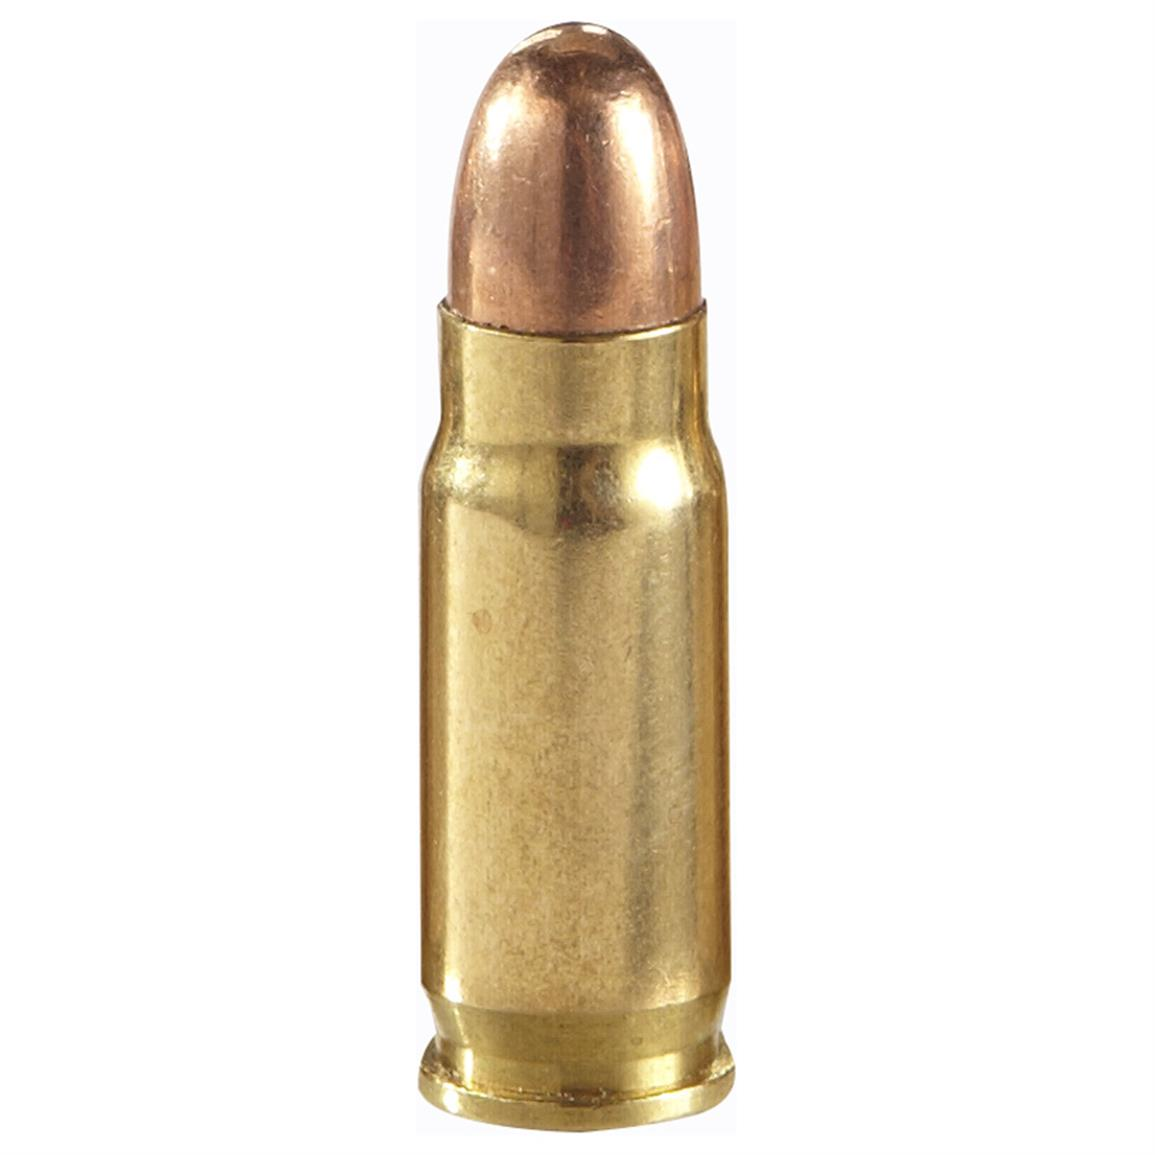 New, boxer-primed, non-corrosive. Reloadable brass case.